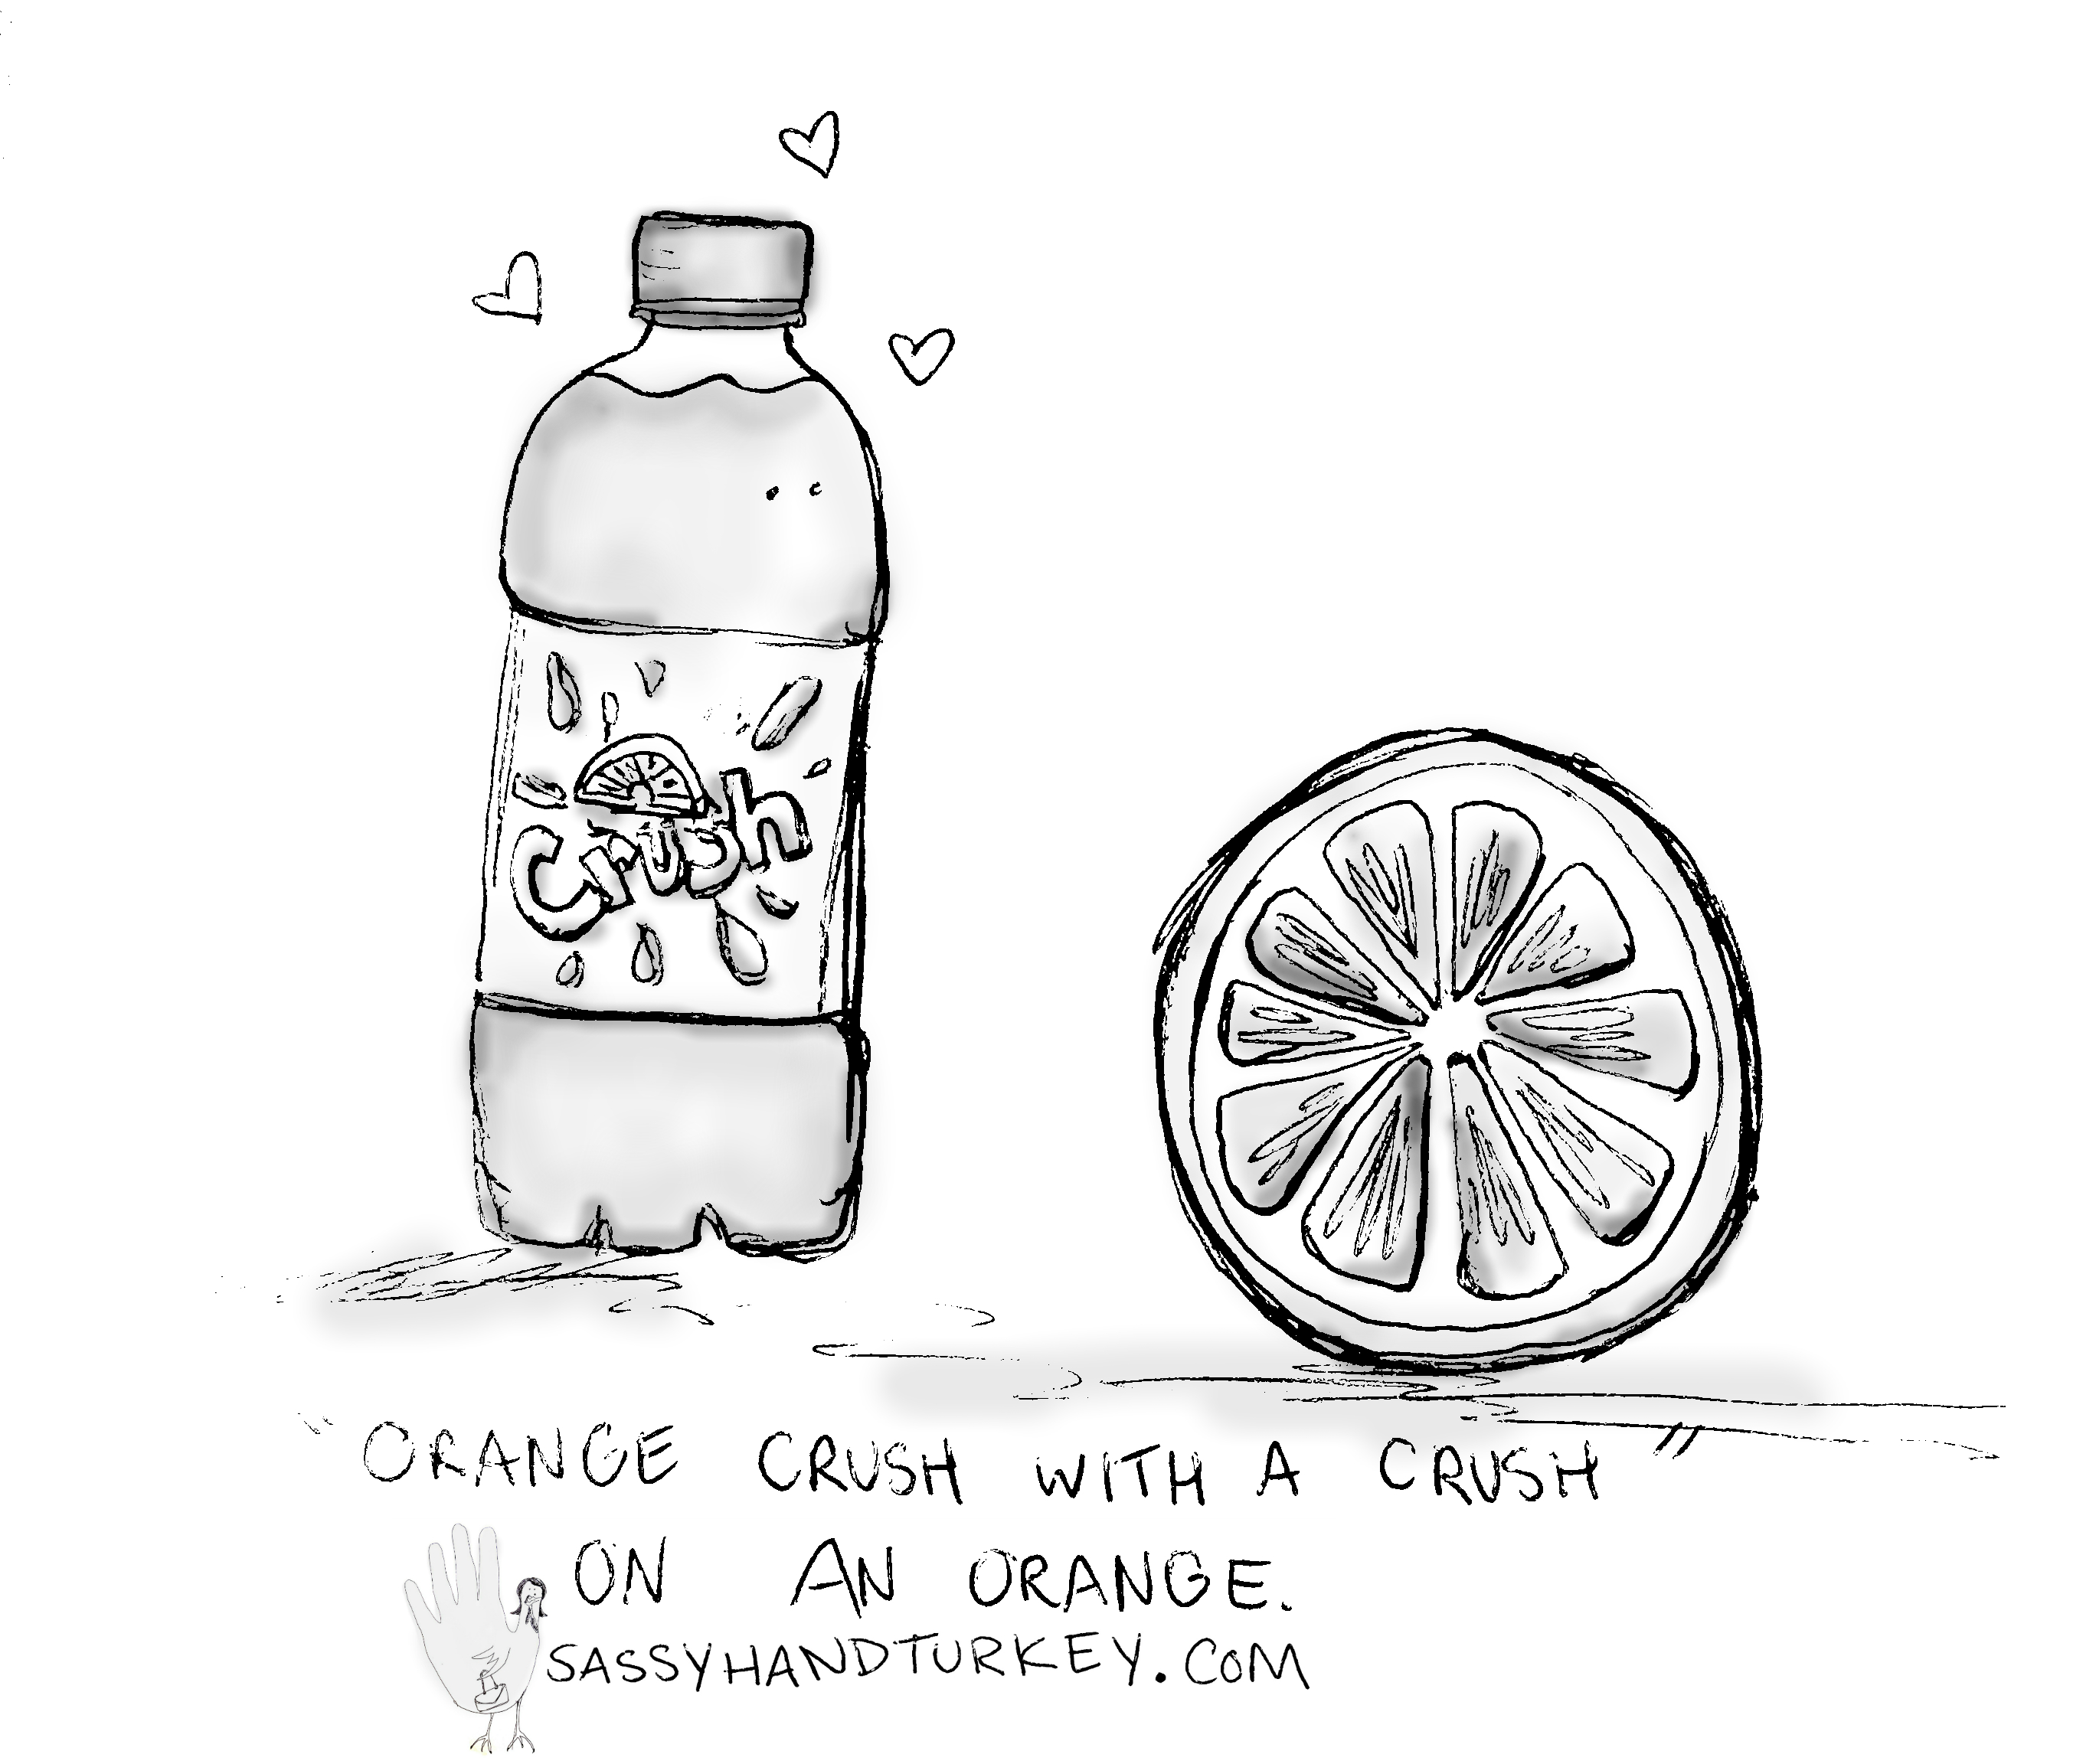 2737x2304 Orange Crush With A Crush On An Orange Sassy Hand Turkey